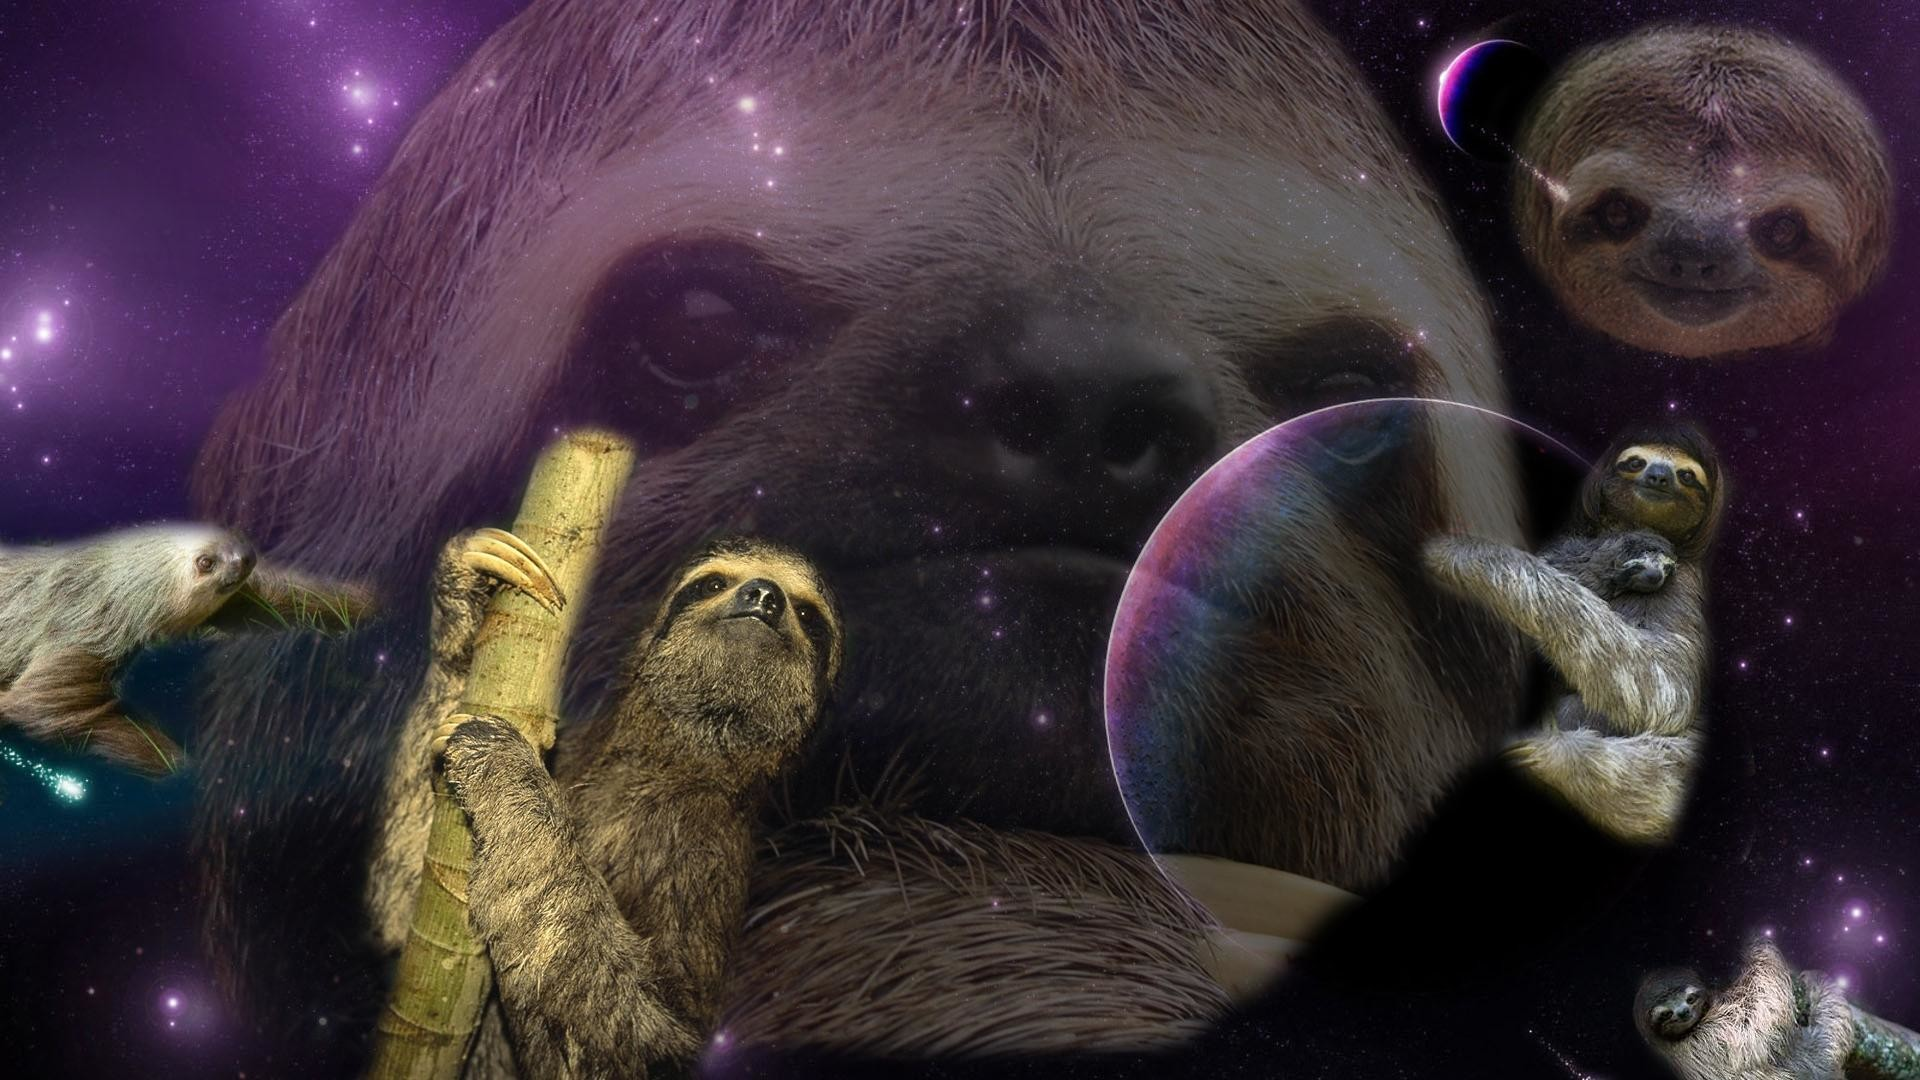 1920x1080 in class and created a sloth wallpaper. I'm currently adding one sloth .